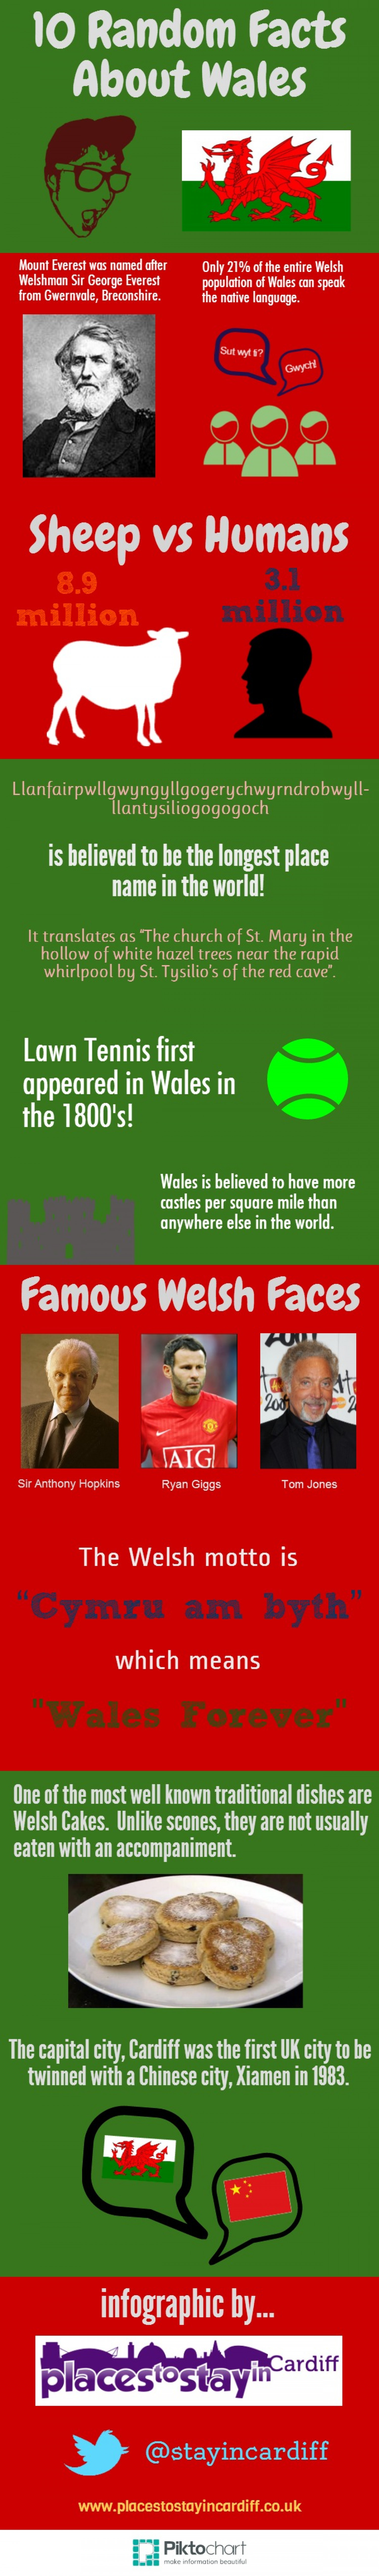 10 Random Facts About Wales Infographic